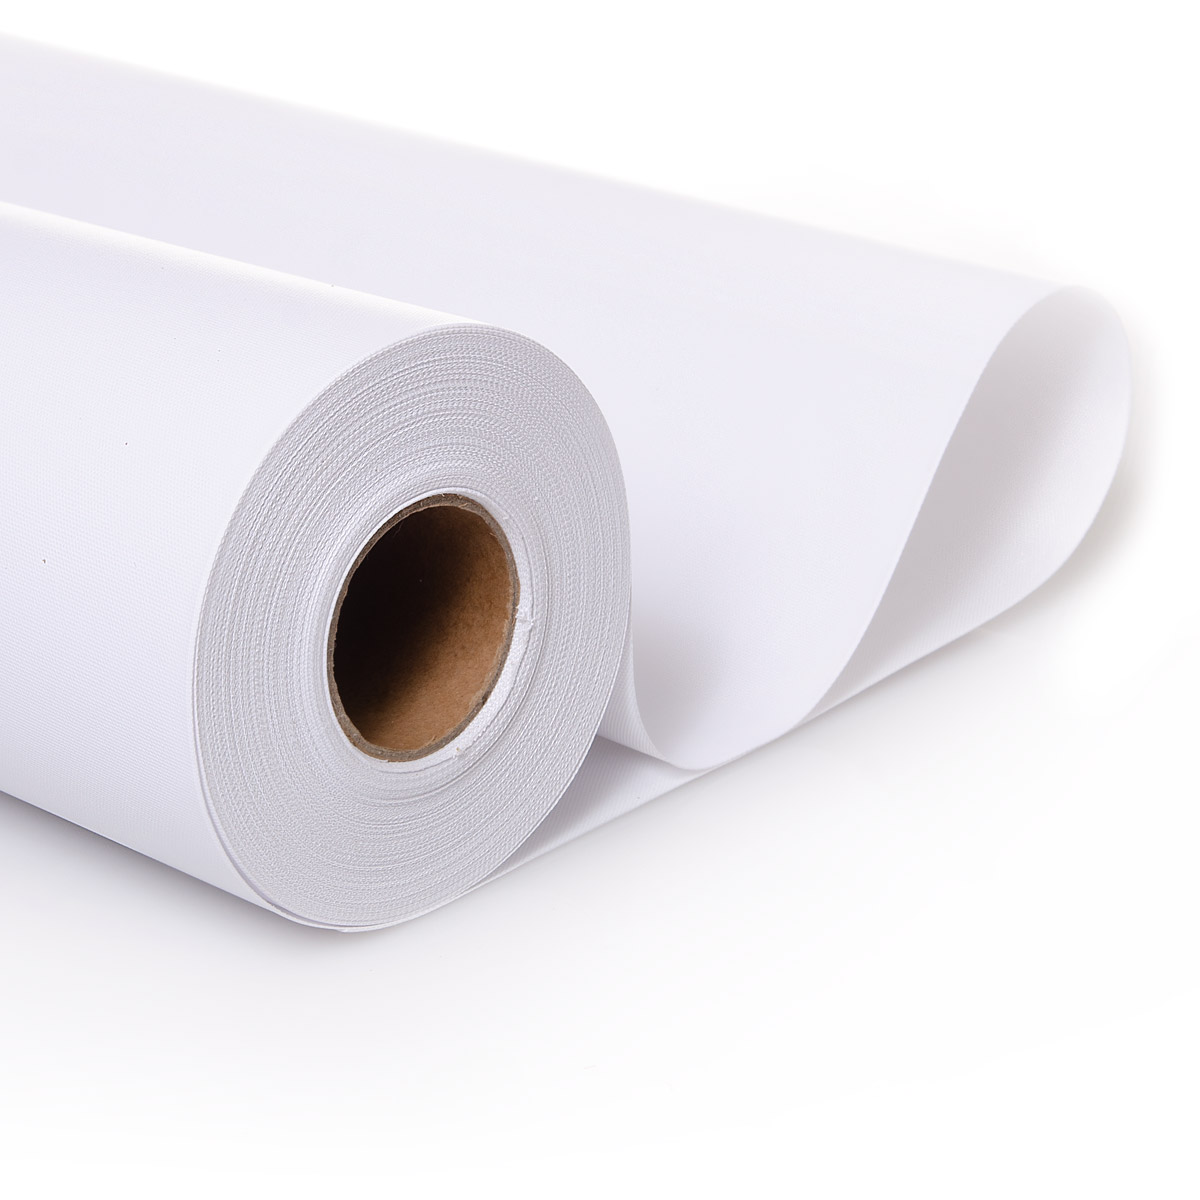 1 Rolle Cotton Inkjet Canvas | Leinwand | Glossy | 380G | 91,4 cm x 18m